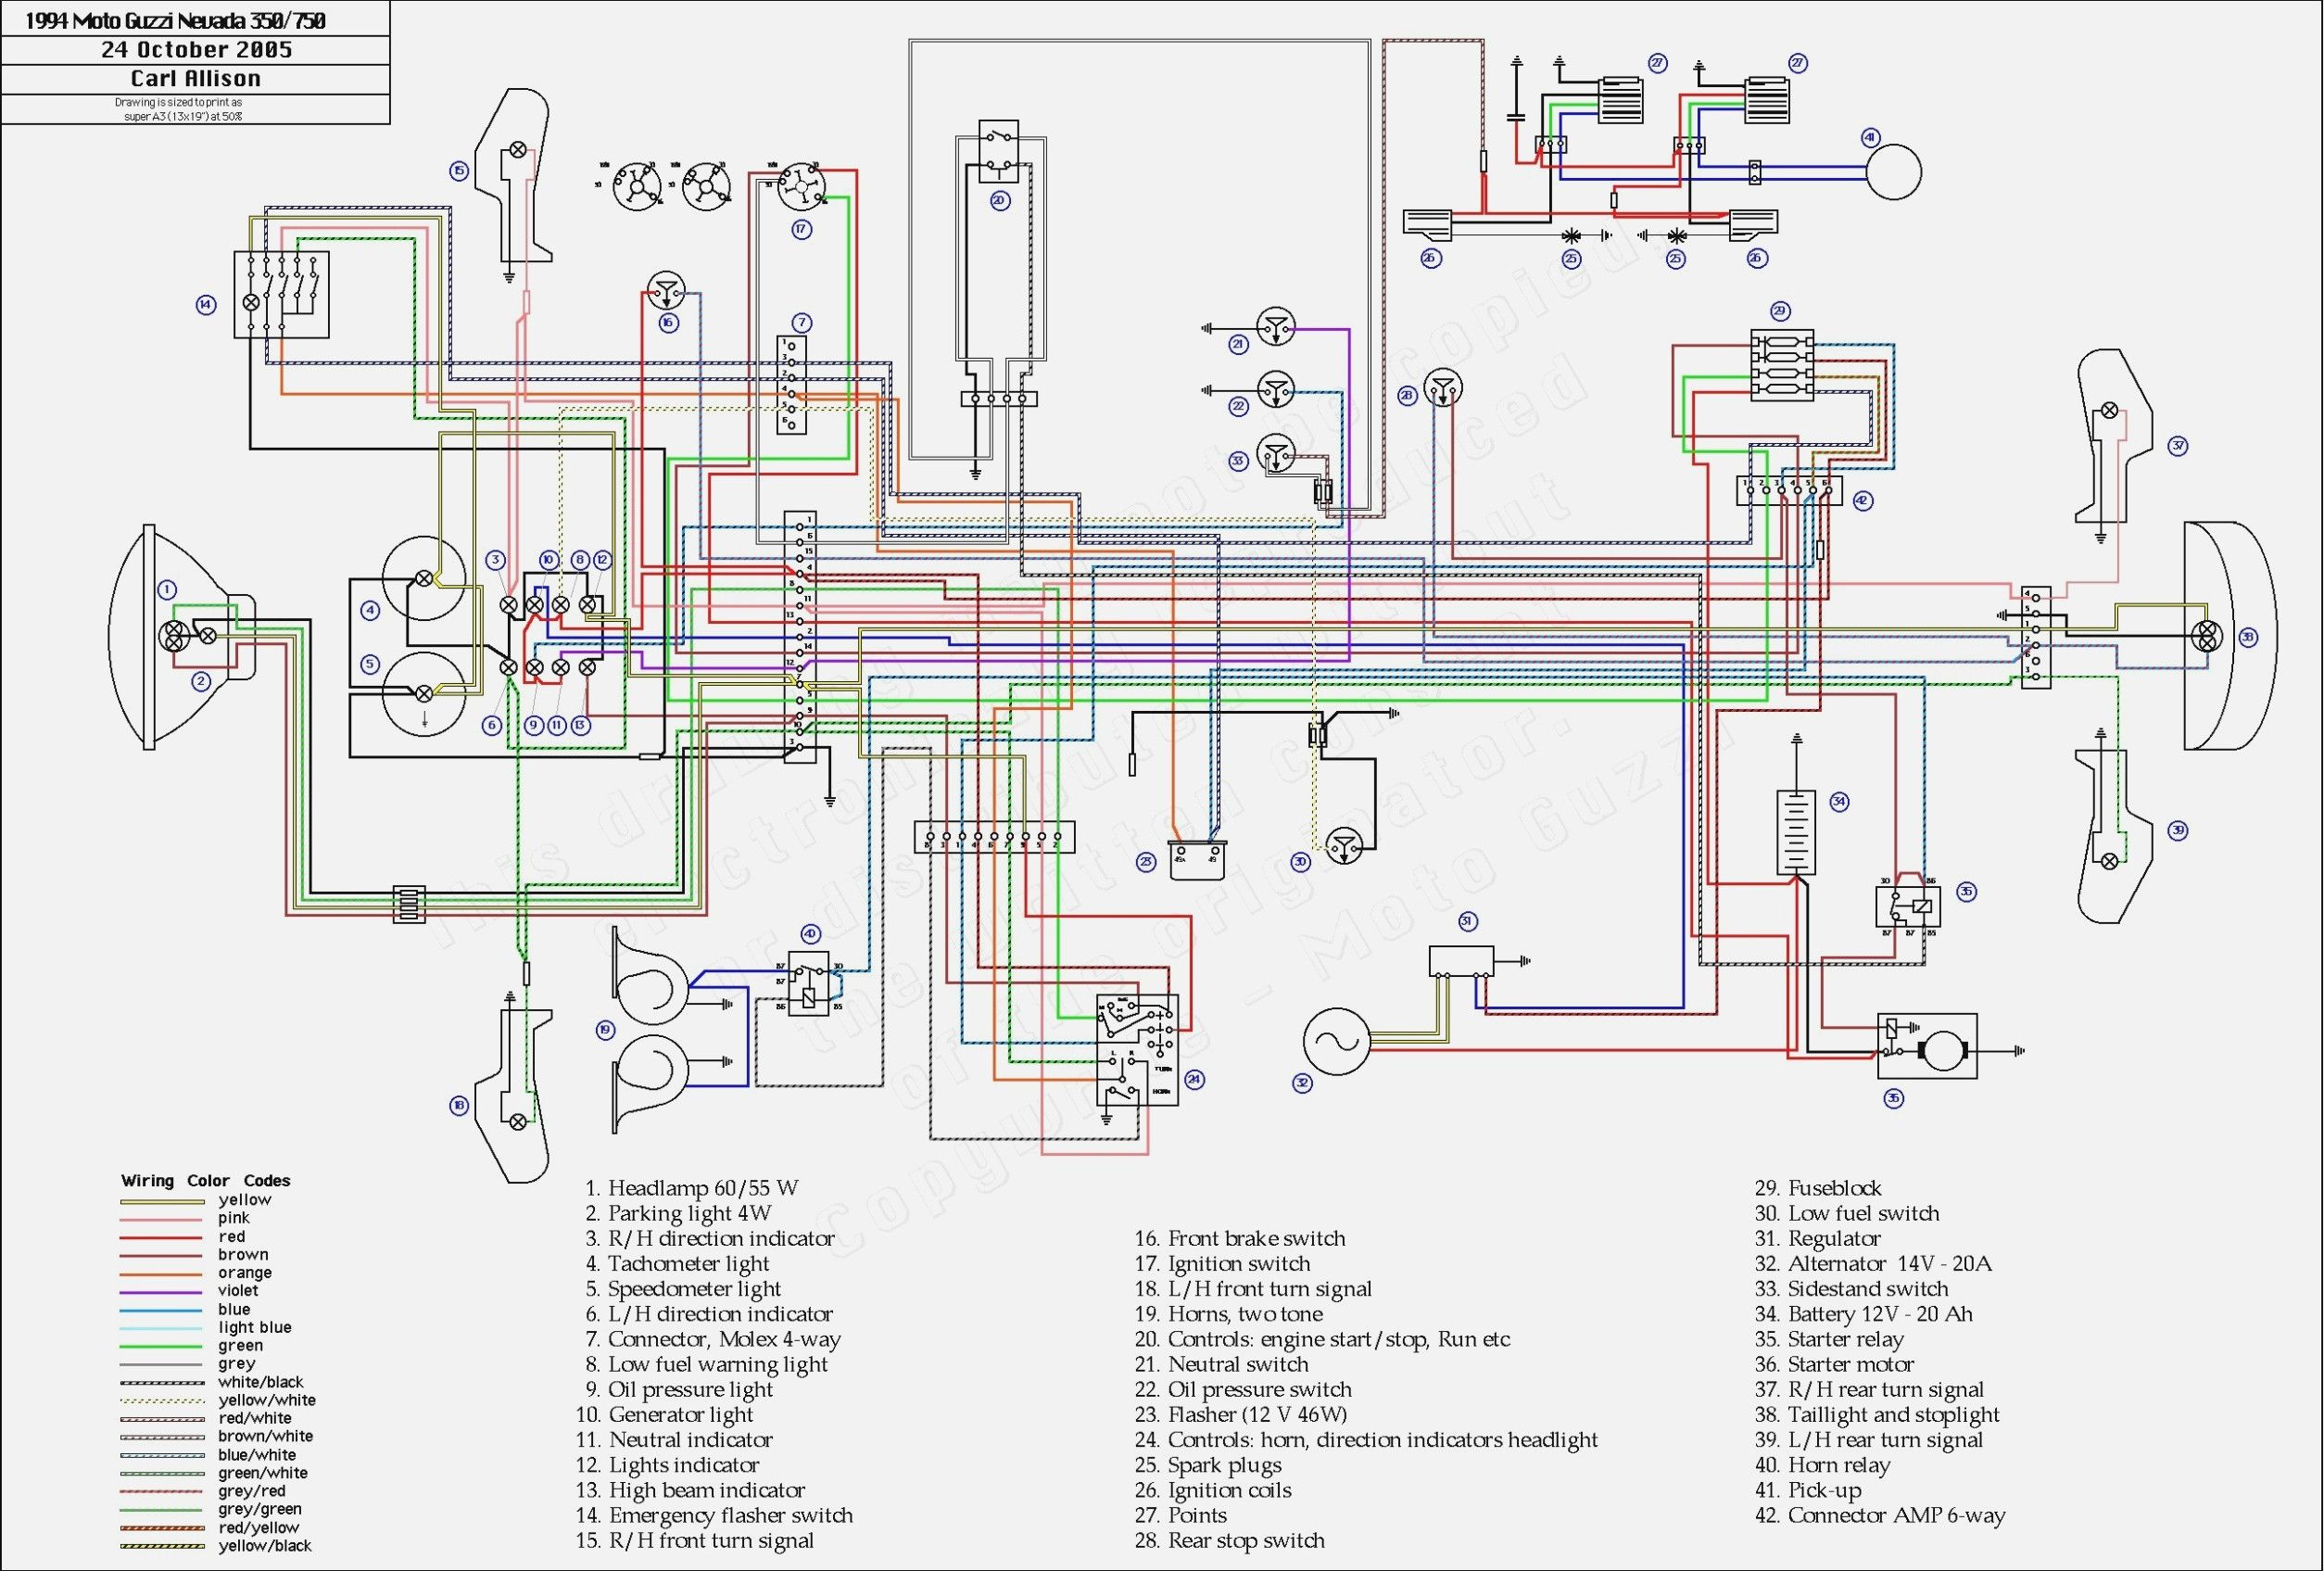 Best Of Wiring Diagram For New Light And Switch Diagrams Digramssample Diagramimages Wiringdiagramsamp Electrical Diagram Electrical Wiring Diagram Diagram